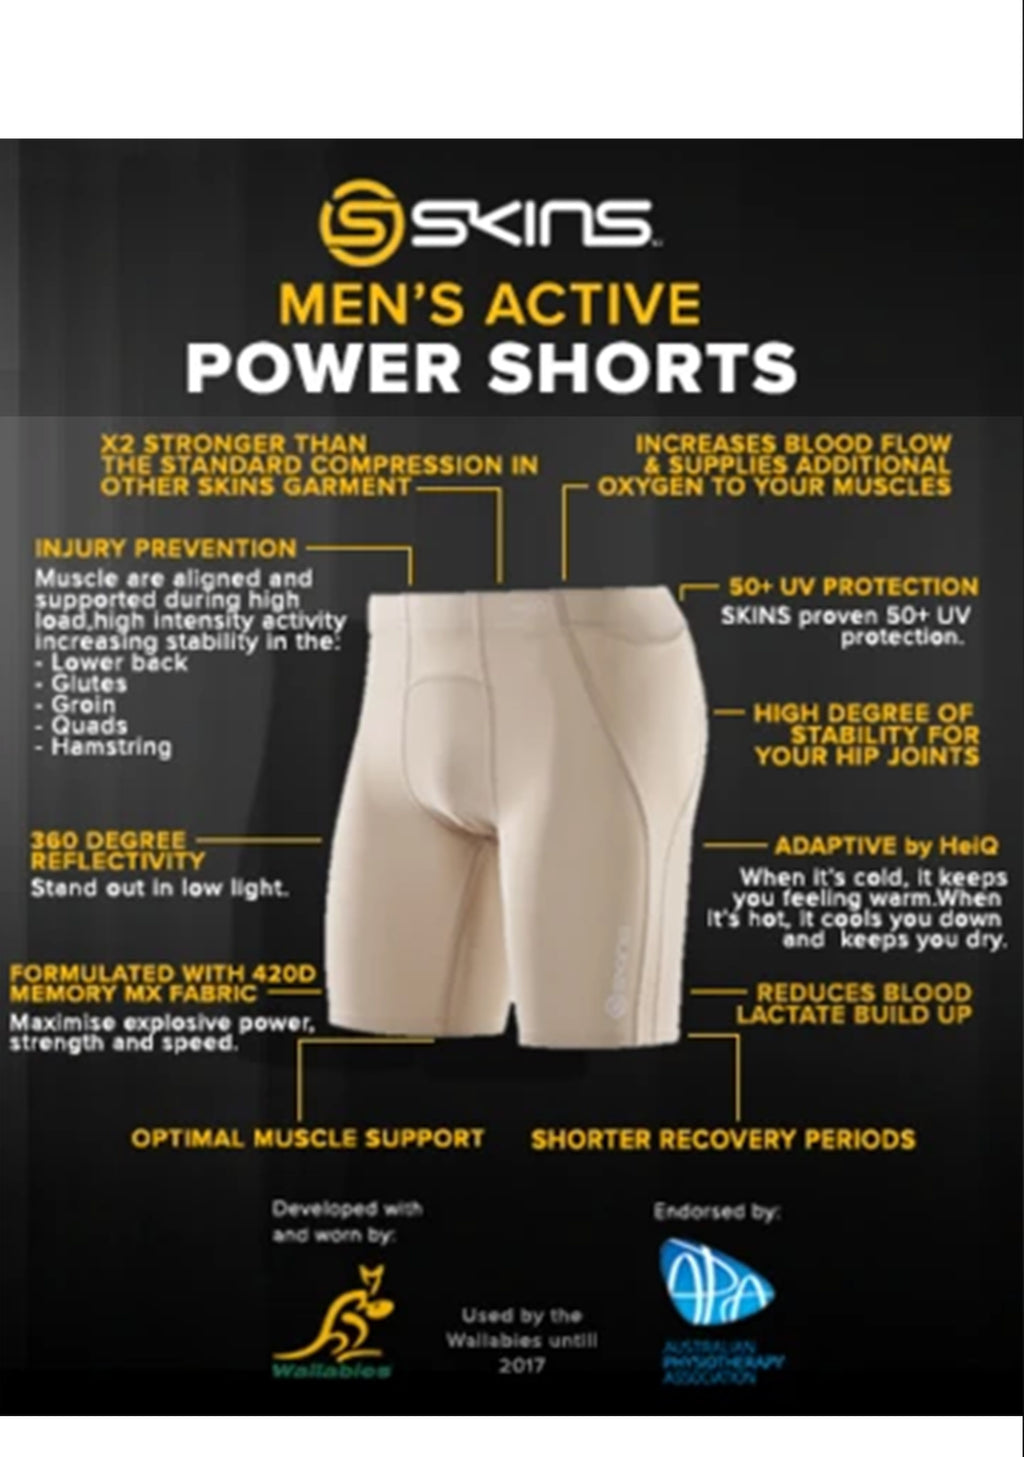 SKINS A400 POWER SHORTS FLESH TONE MENS <br> ZB99323039002